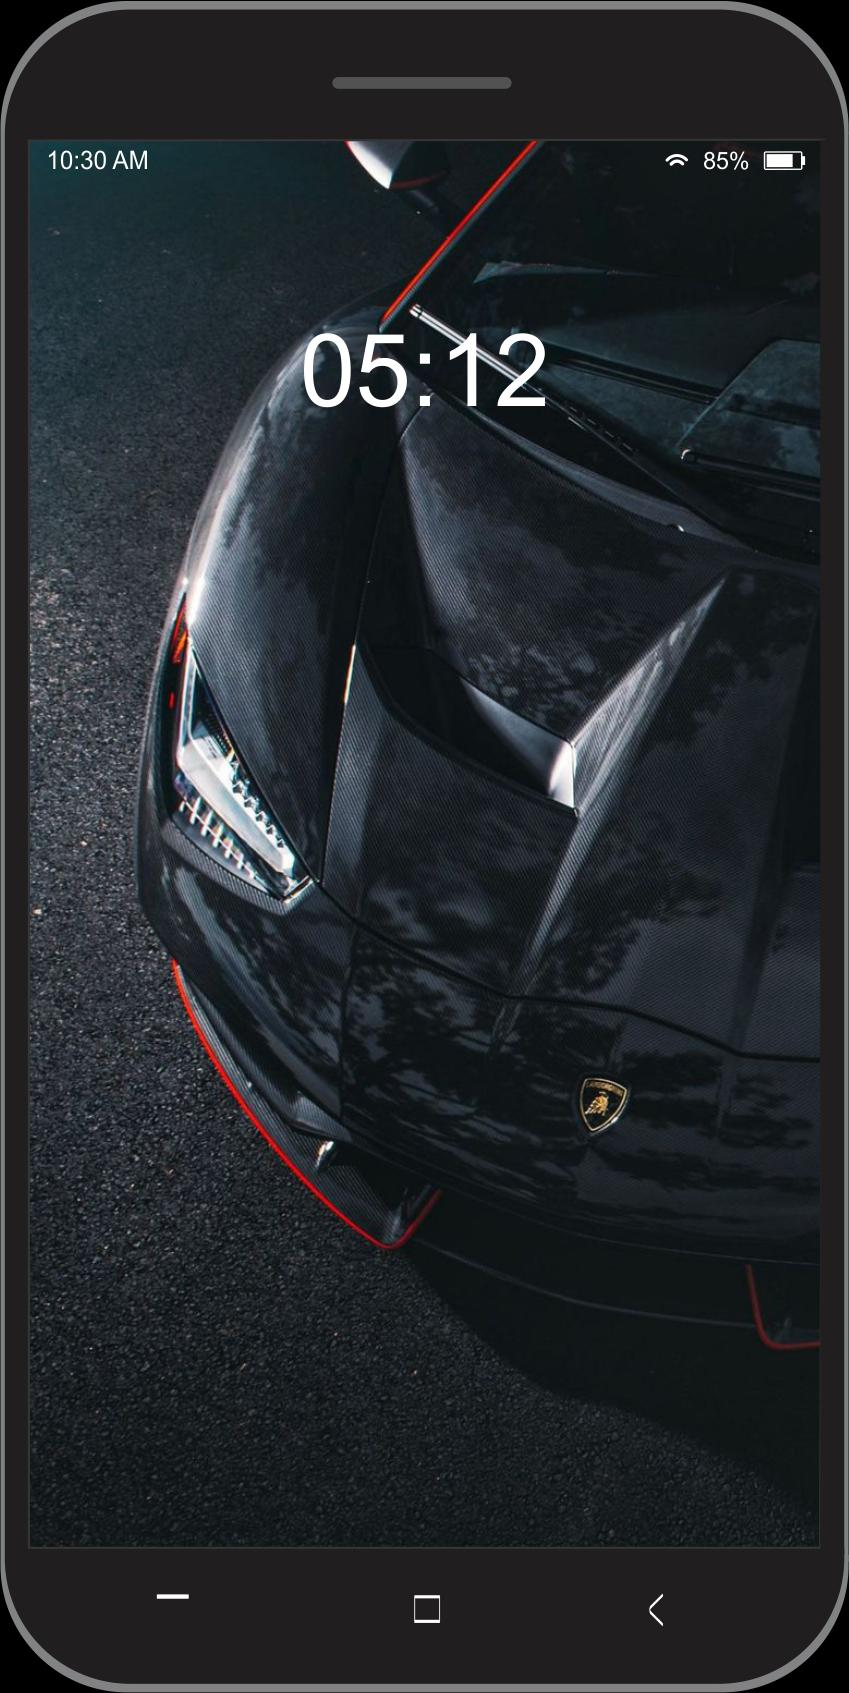 Fancy Black Car Wallpaper Hd For Android Apk Download